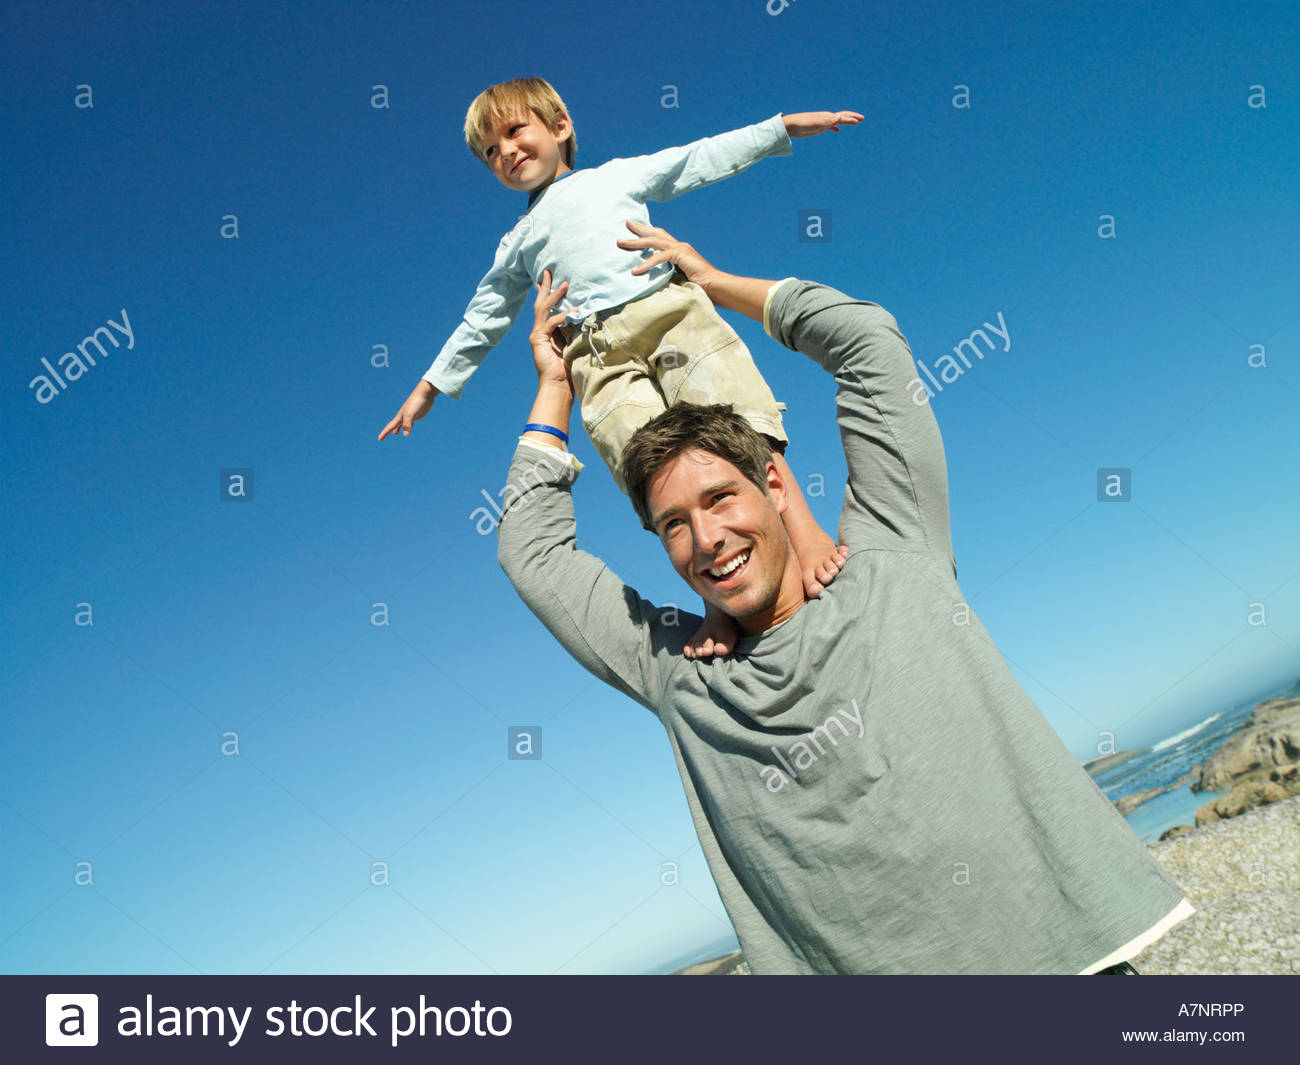 Boy 4 6 standing on father s shoulders at beach arms out smiling tilt - Stock Image